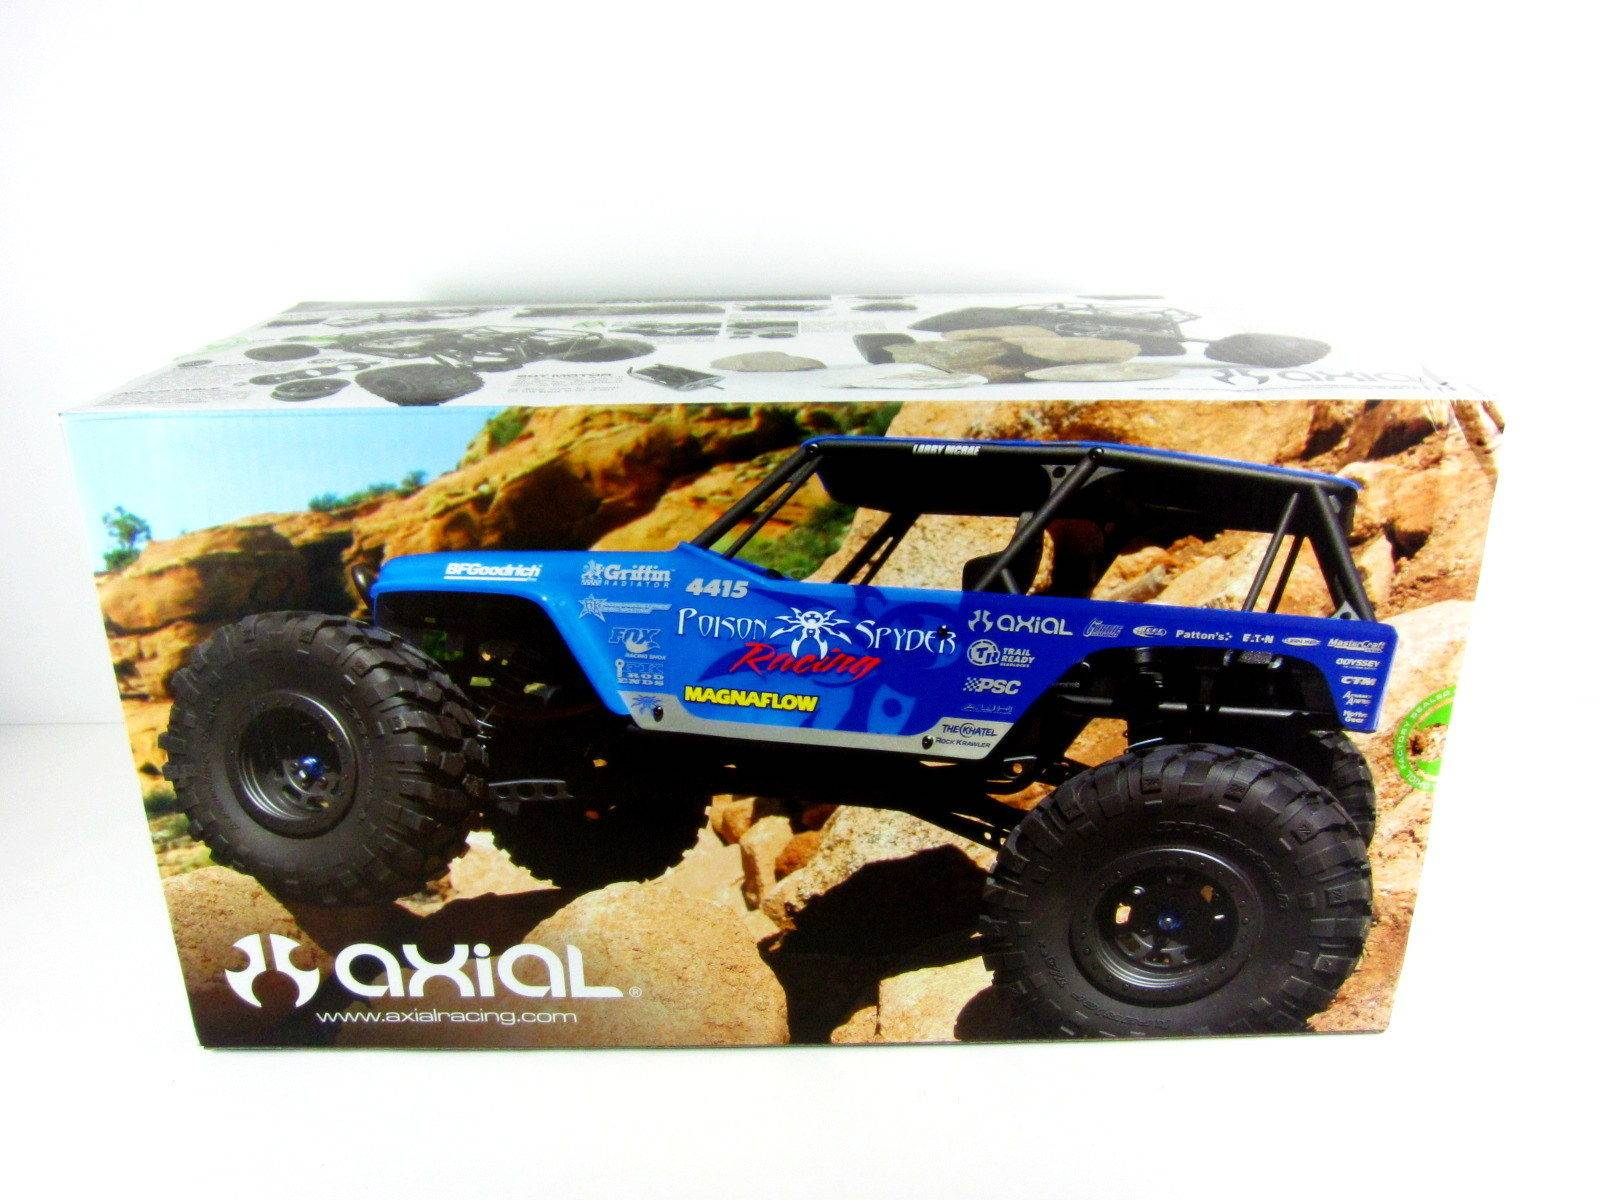 New Axial 1/10 Wraith Jeep Wrangler Poison Spyder 4WD RTR RC Rock Crawler AXIAX90031